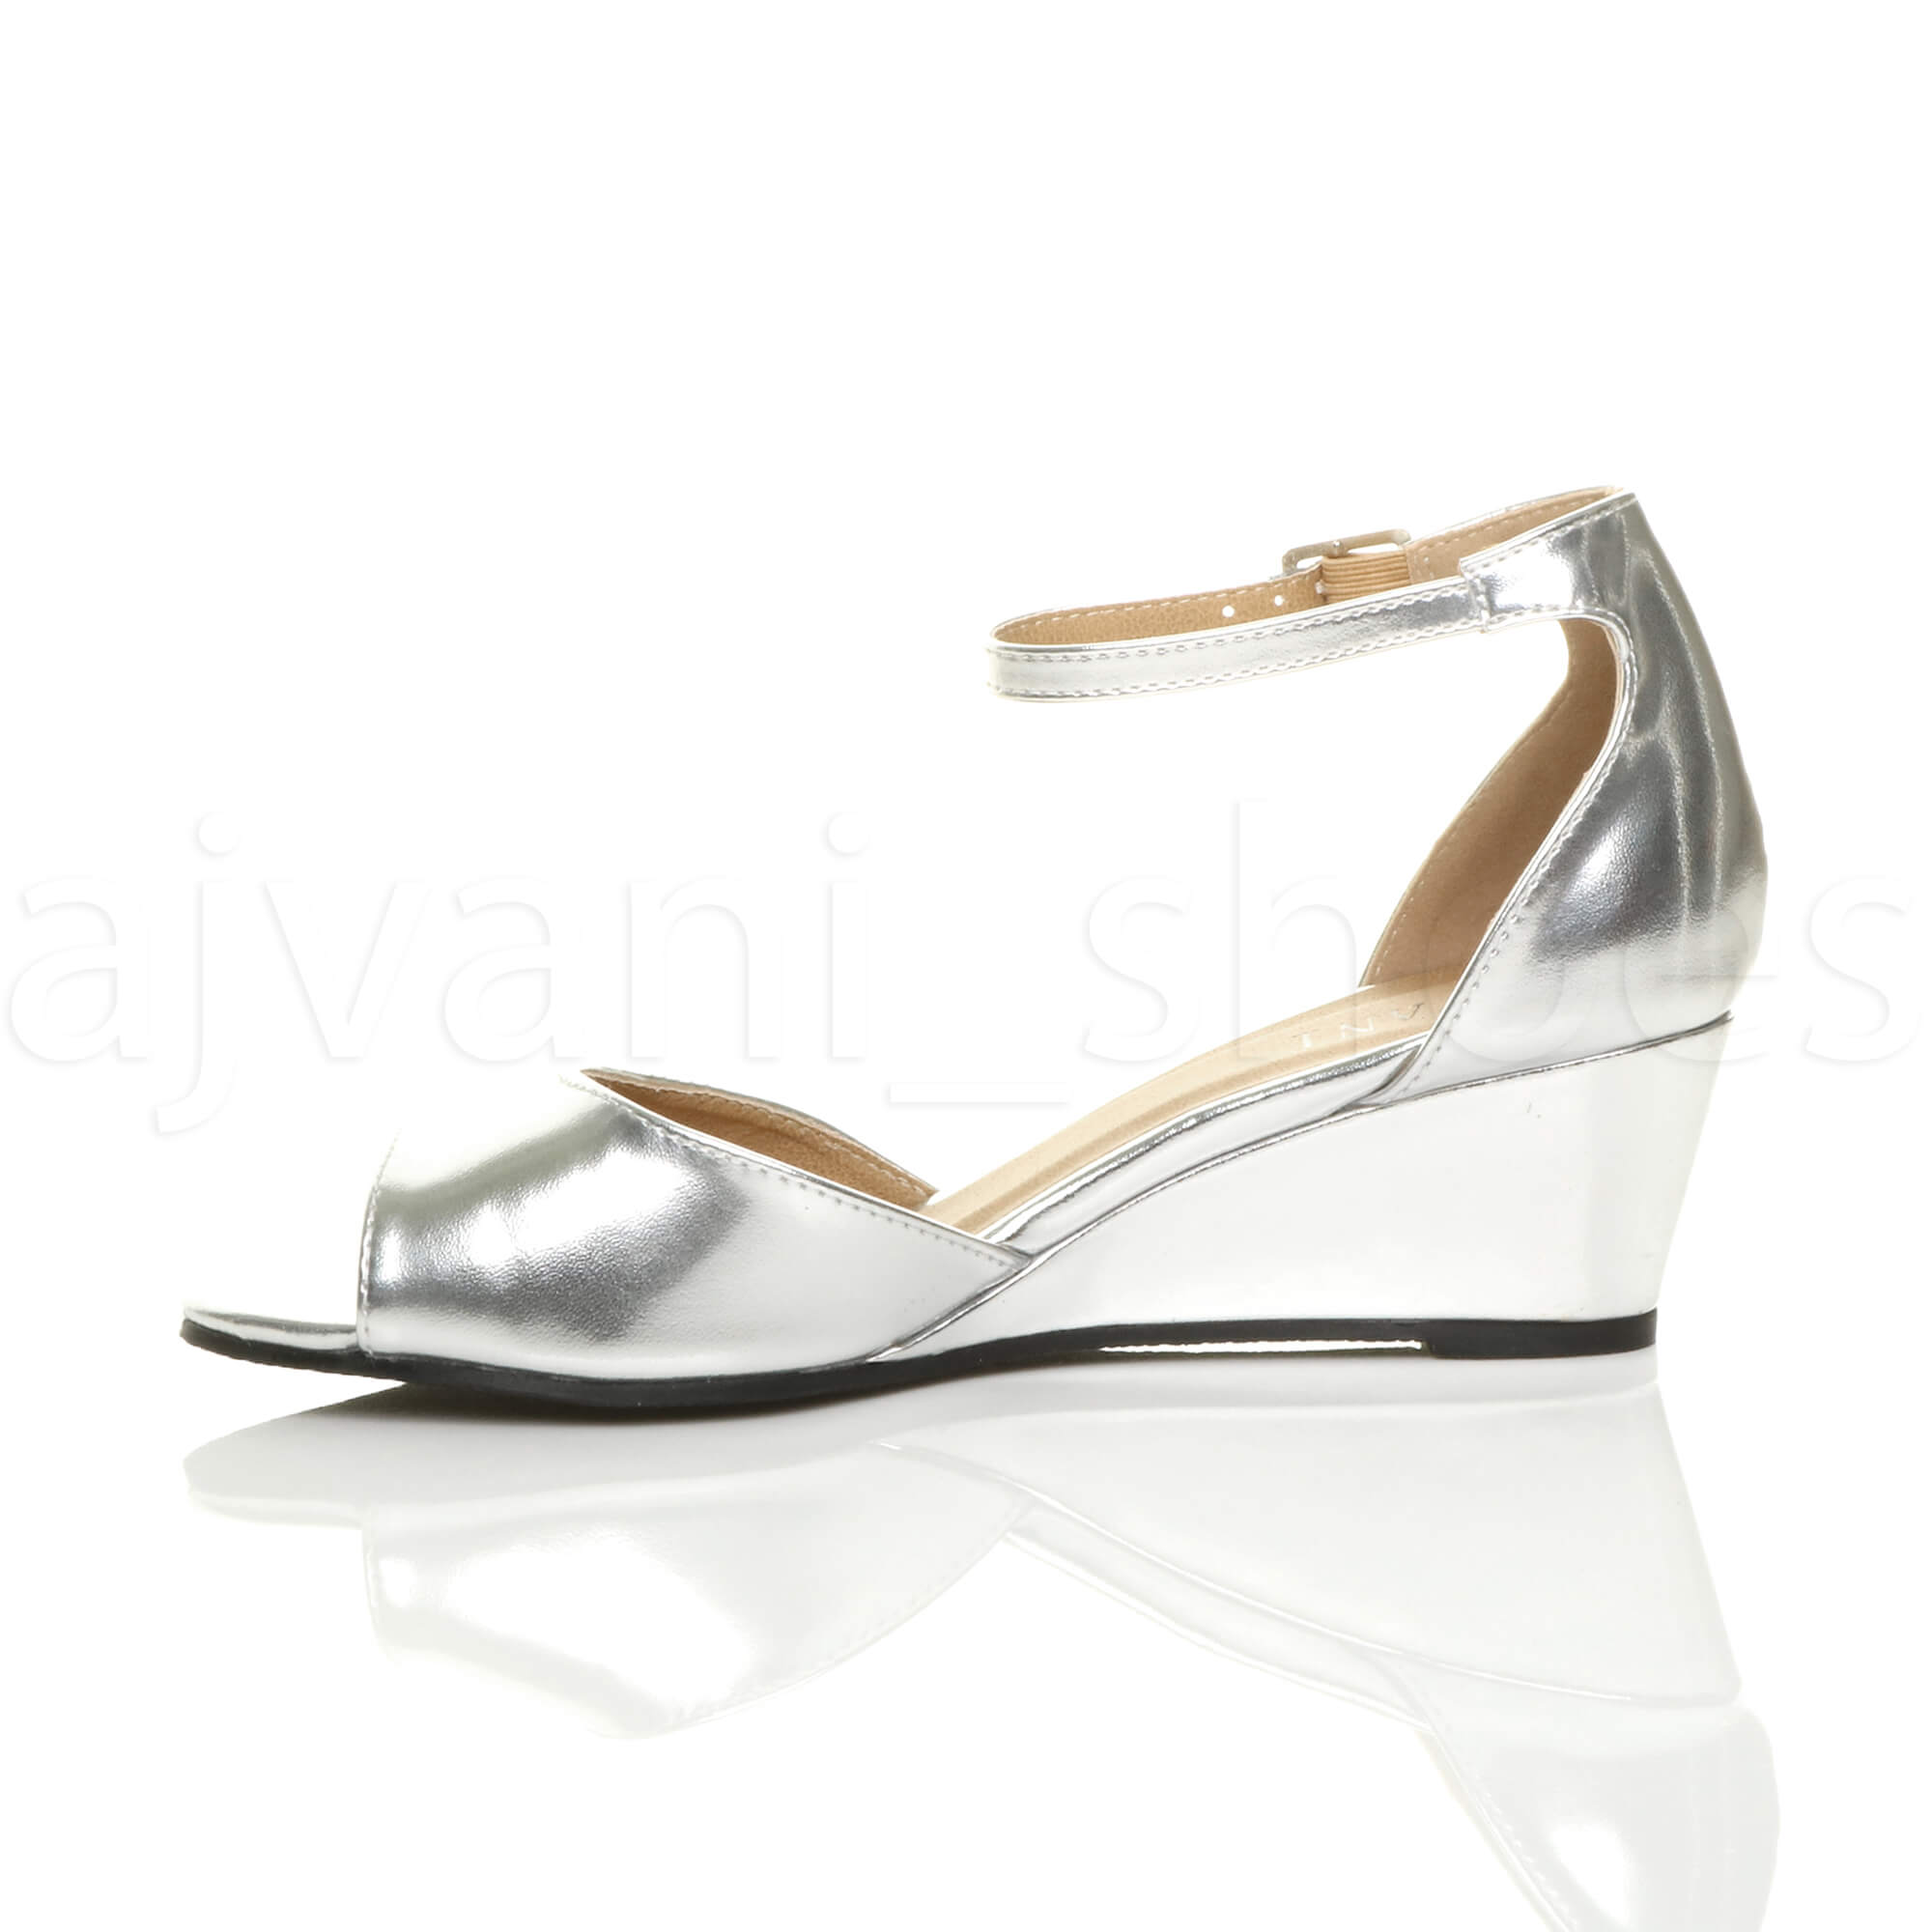 WOMENS-LADIES-LOW-MID-WEDGE-HEEL-ANKLE-STRAP-SMART-CASUAL-EVENING-SANDALS-SIZE thumbnail 148